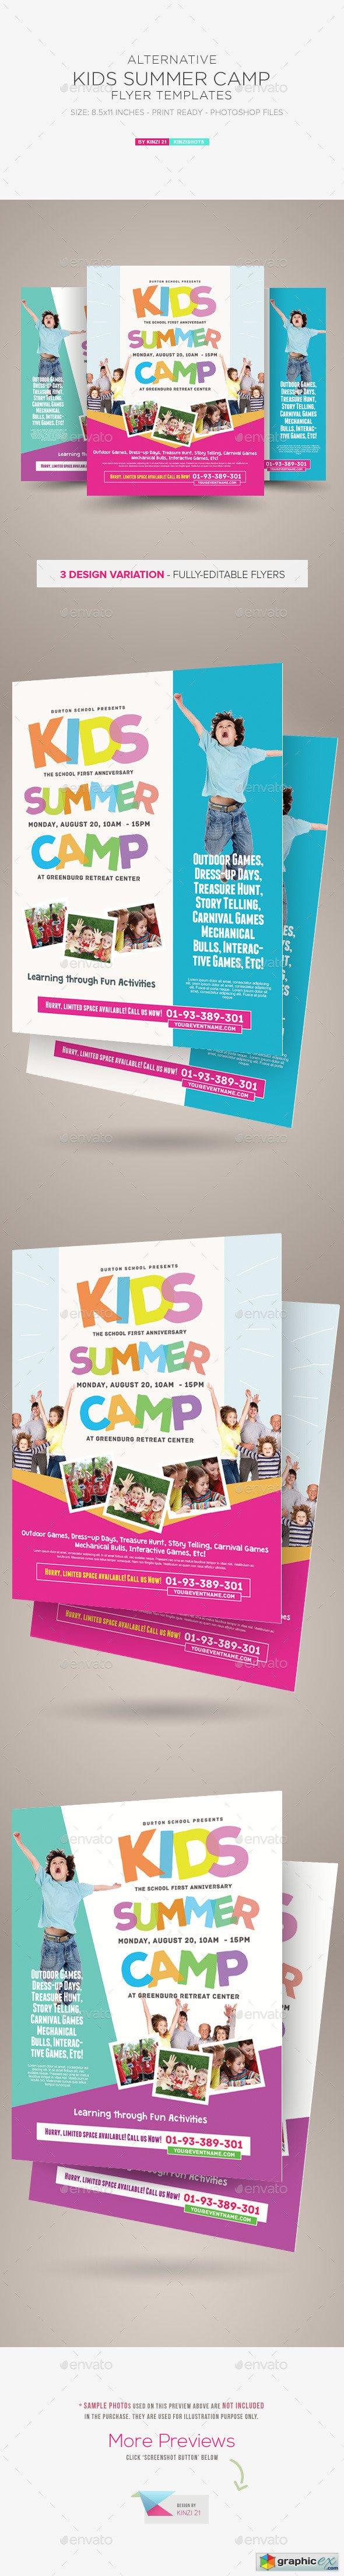 Kids Summer Camp Flyer Templates 10476259